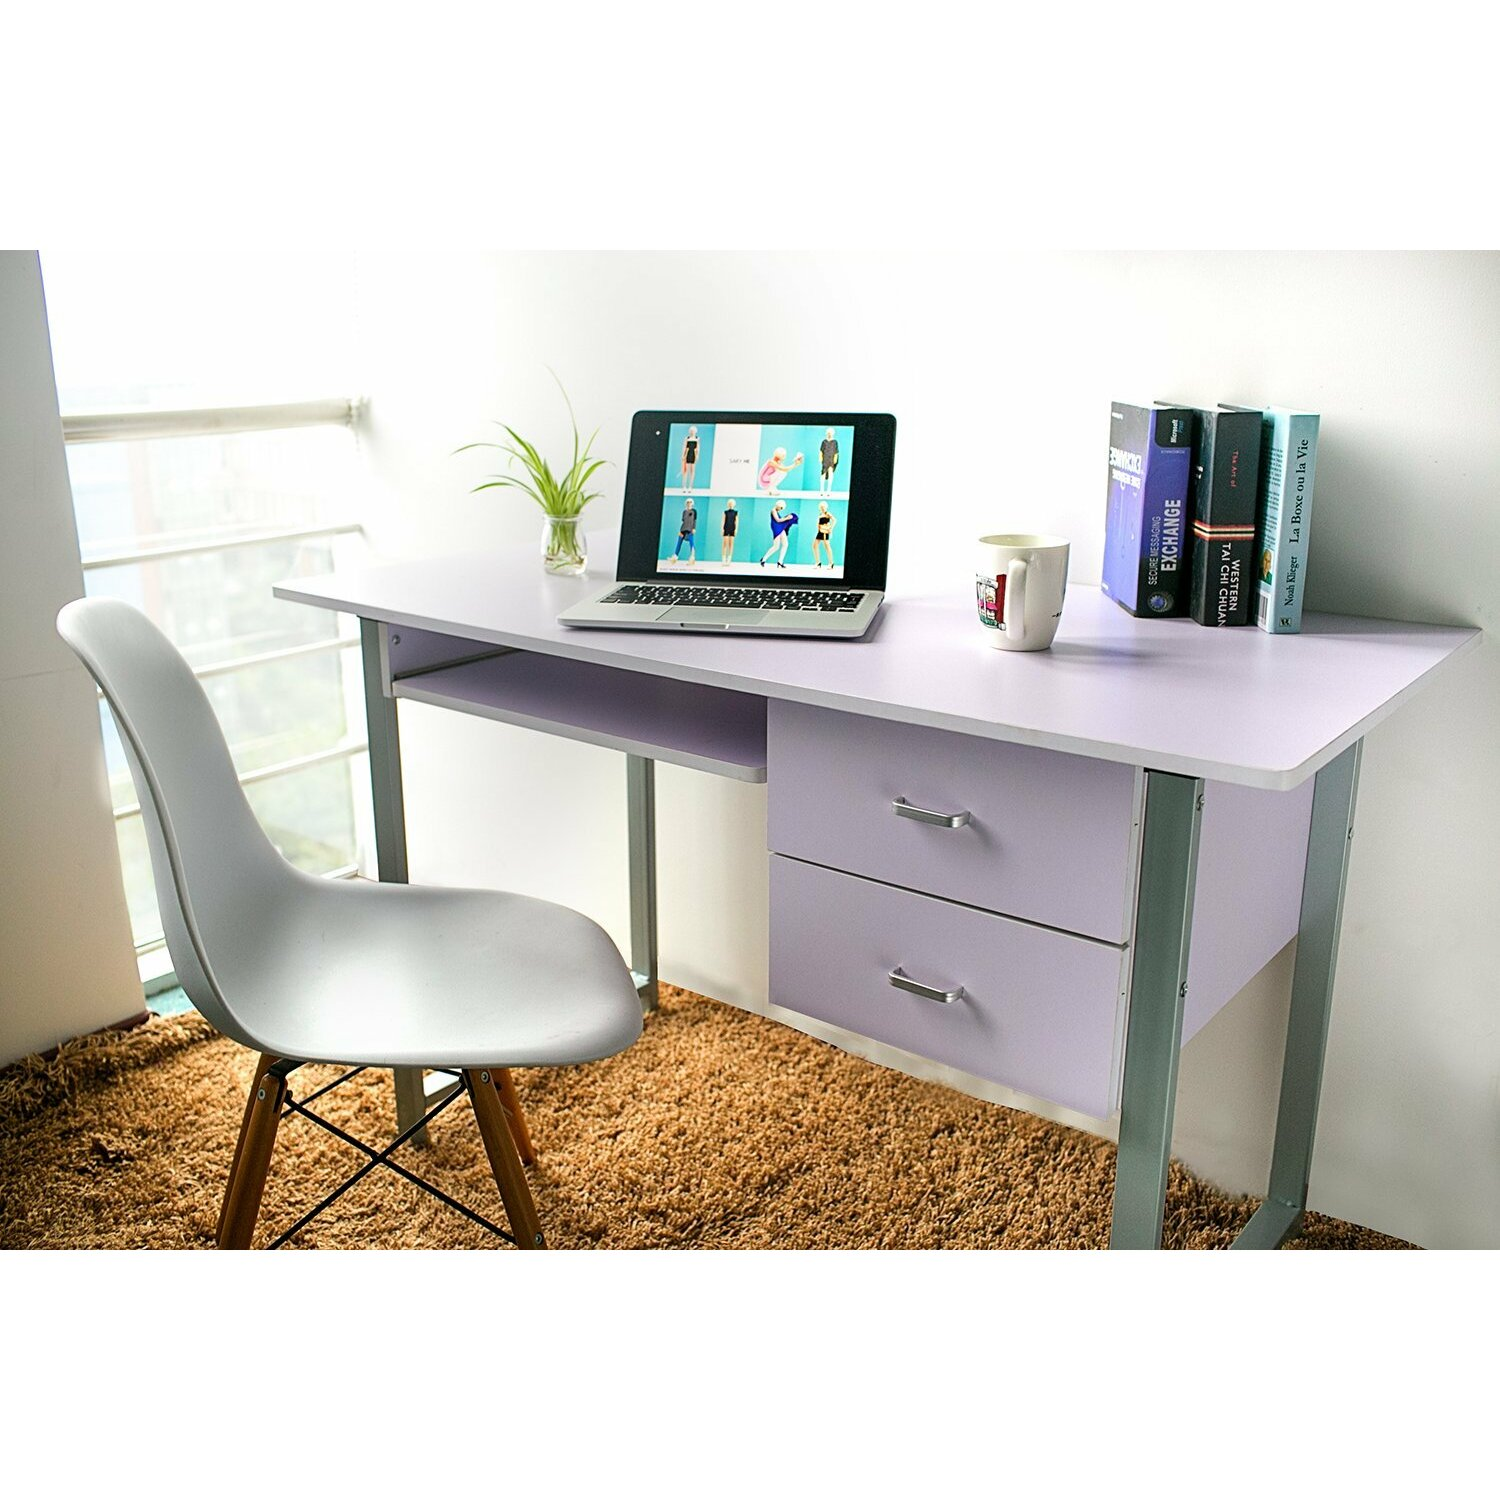 Desk With Drawers Home Office Furniture. Center Drawer Office Desk